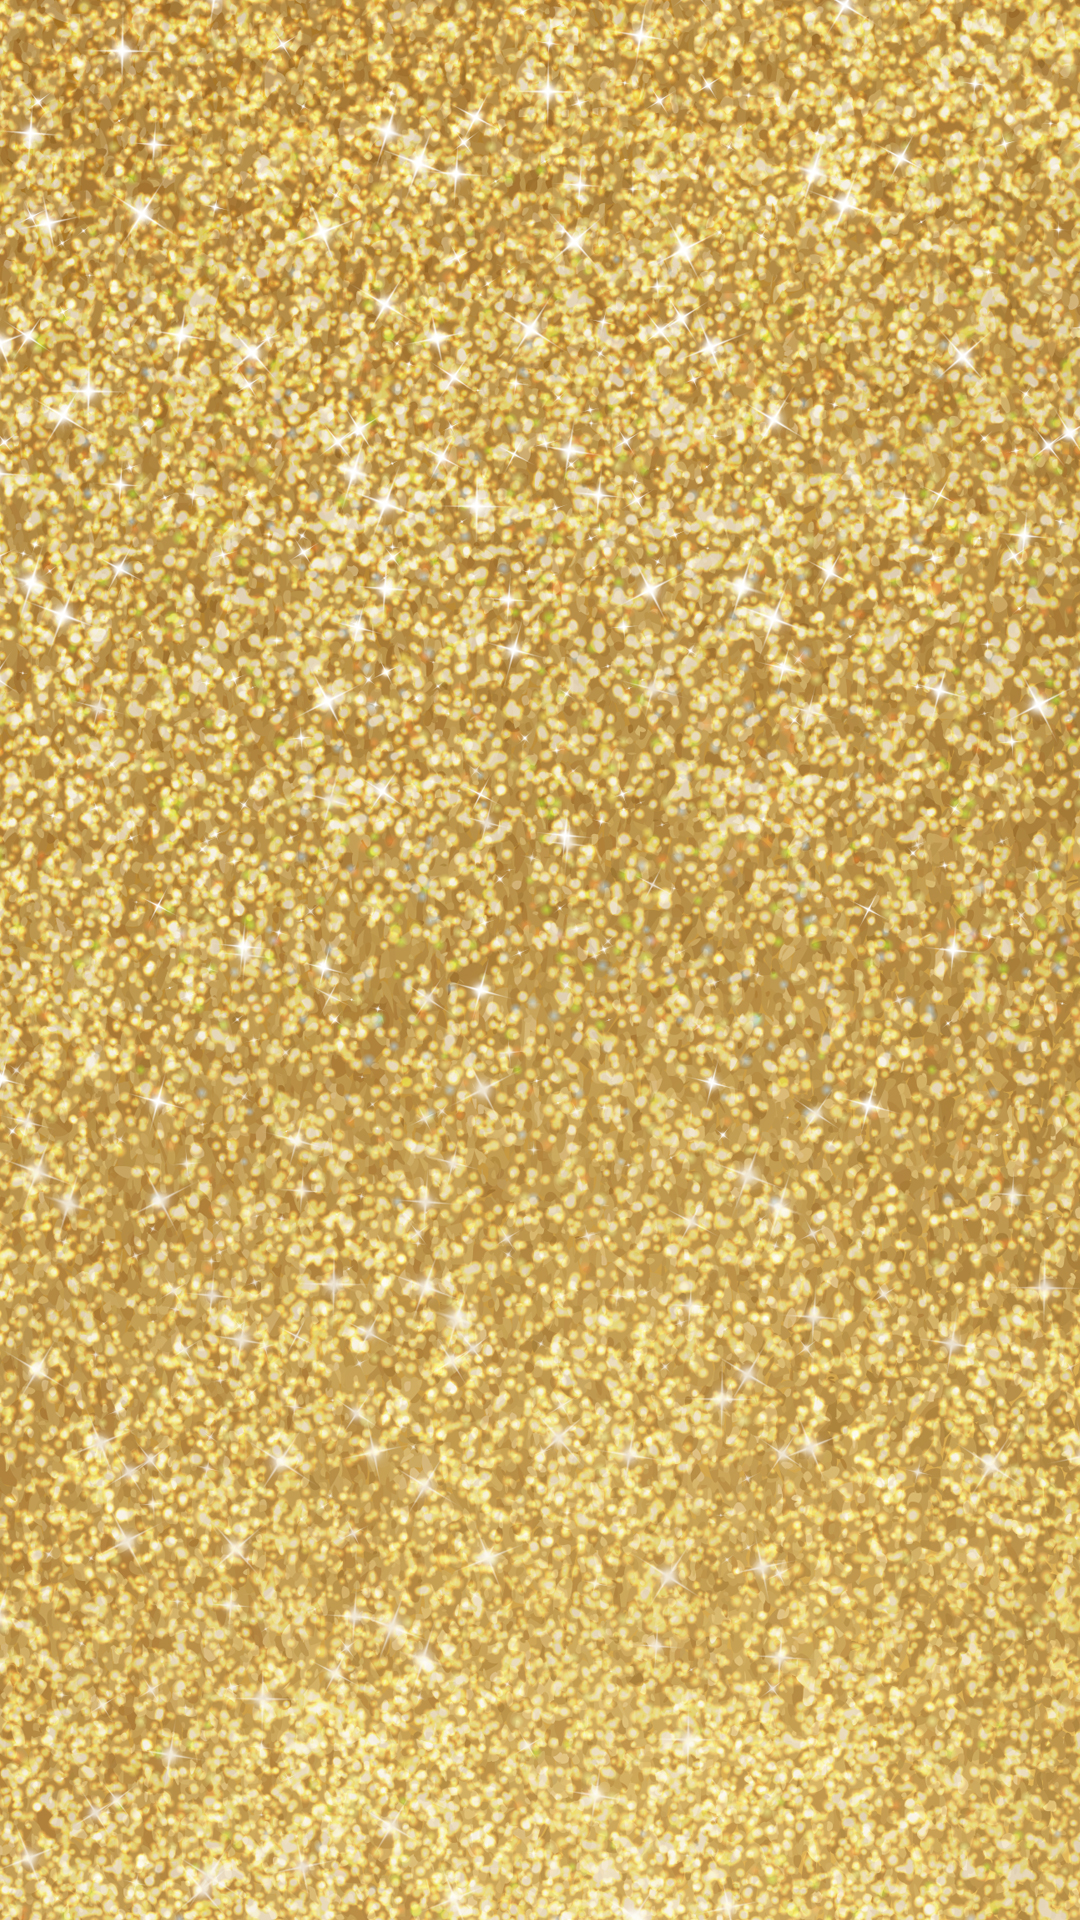 gold glitter hd wallpaper for your mobile phone